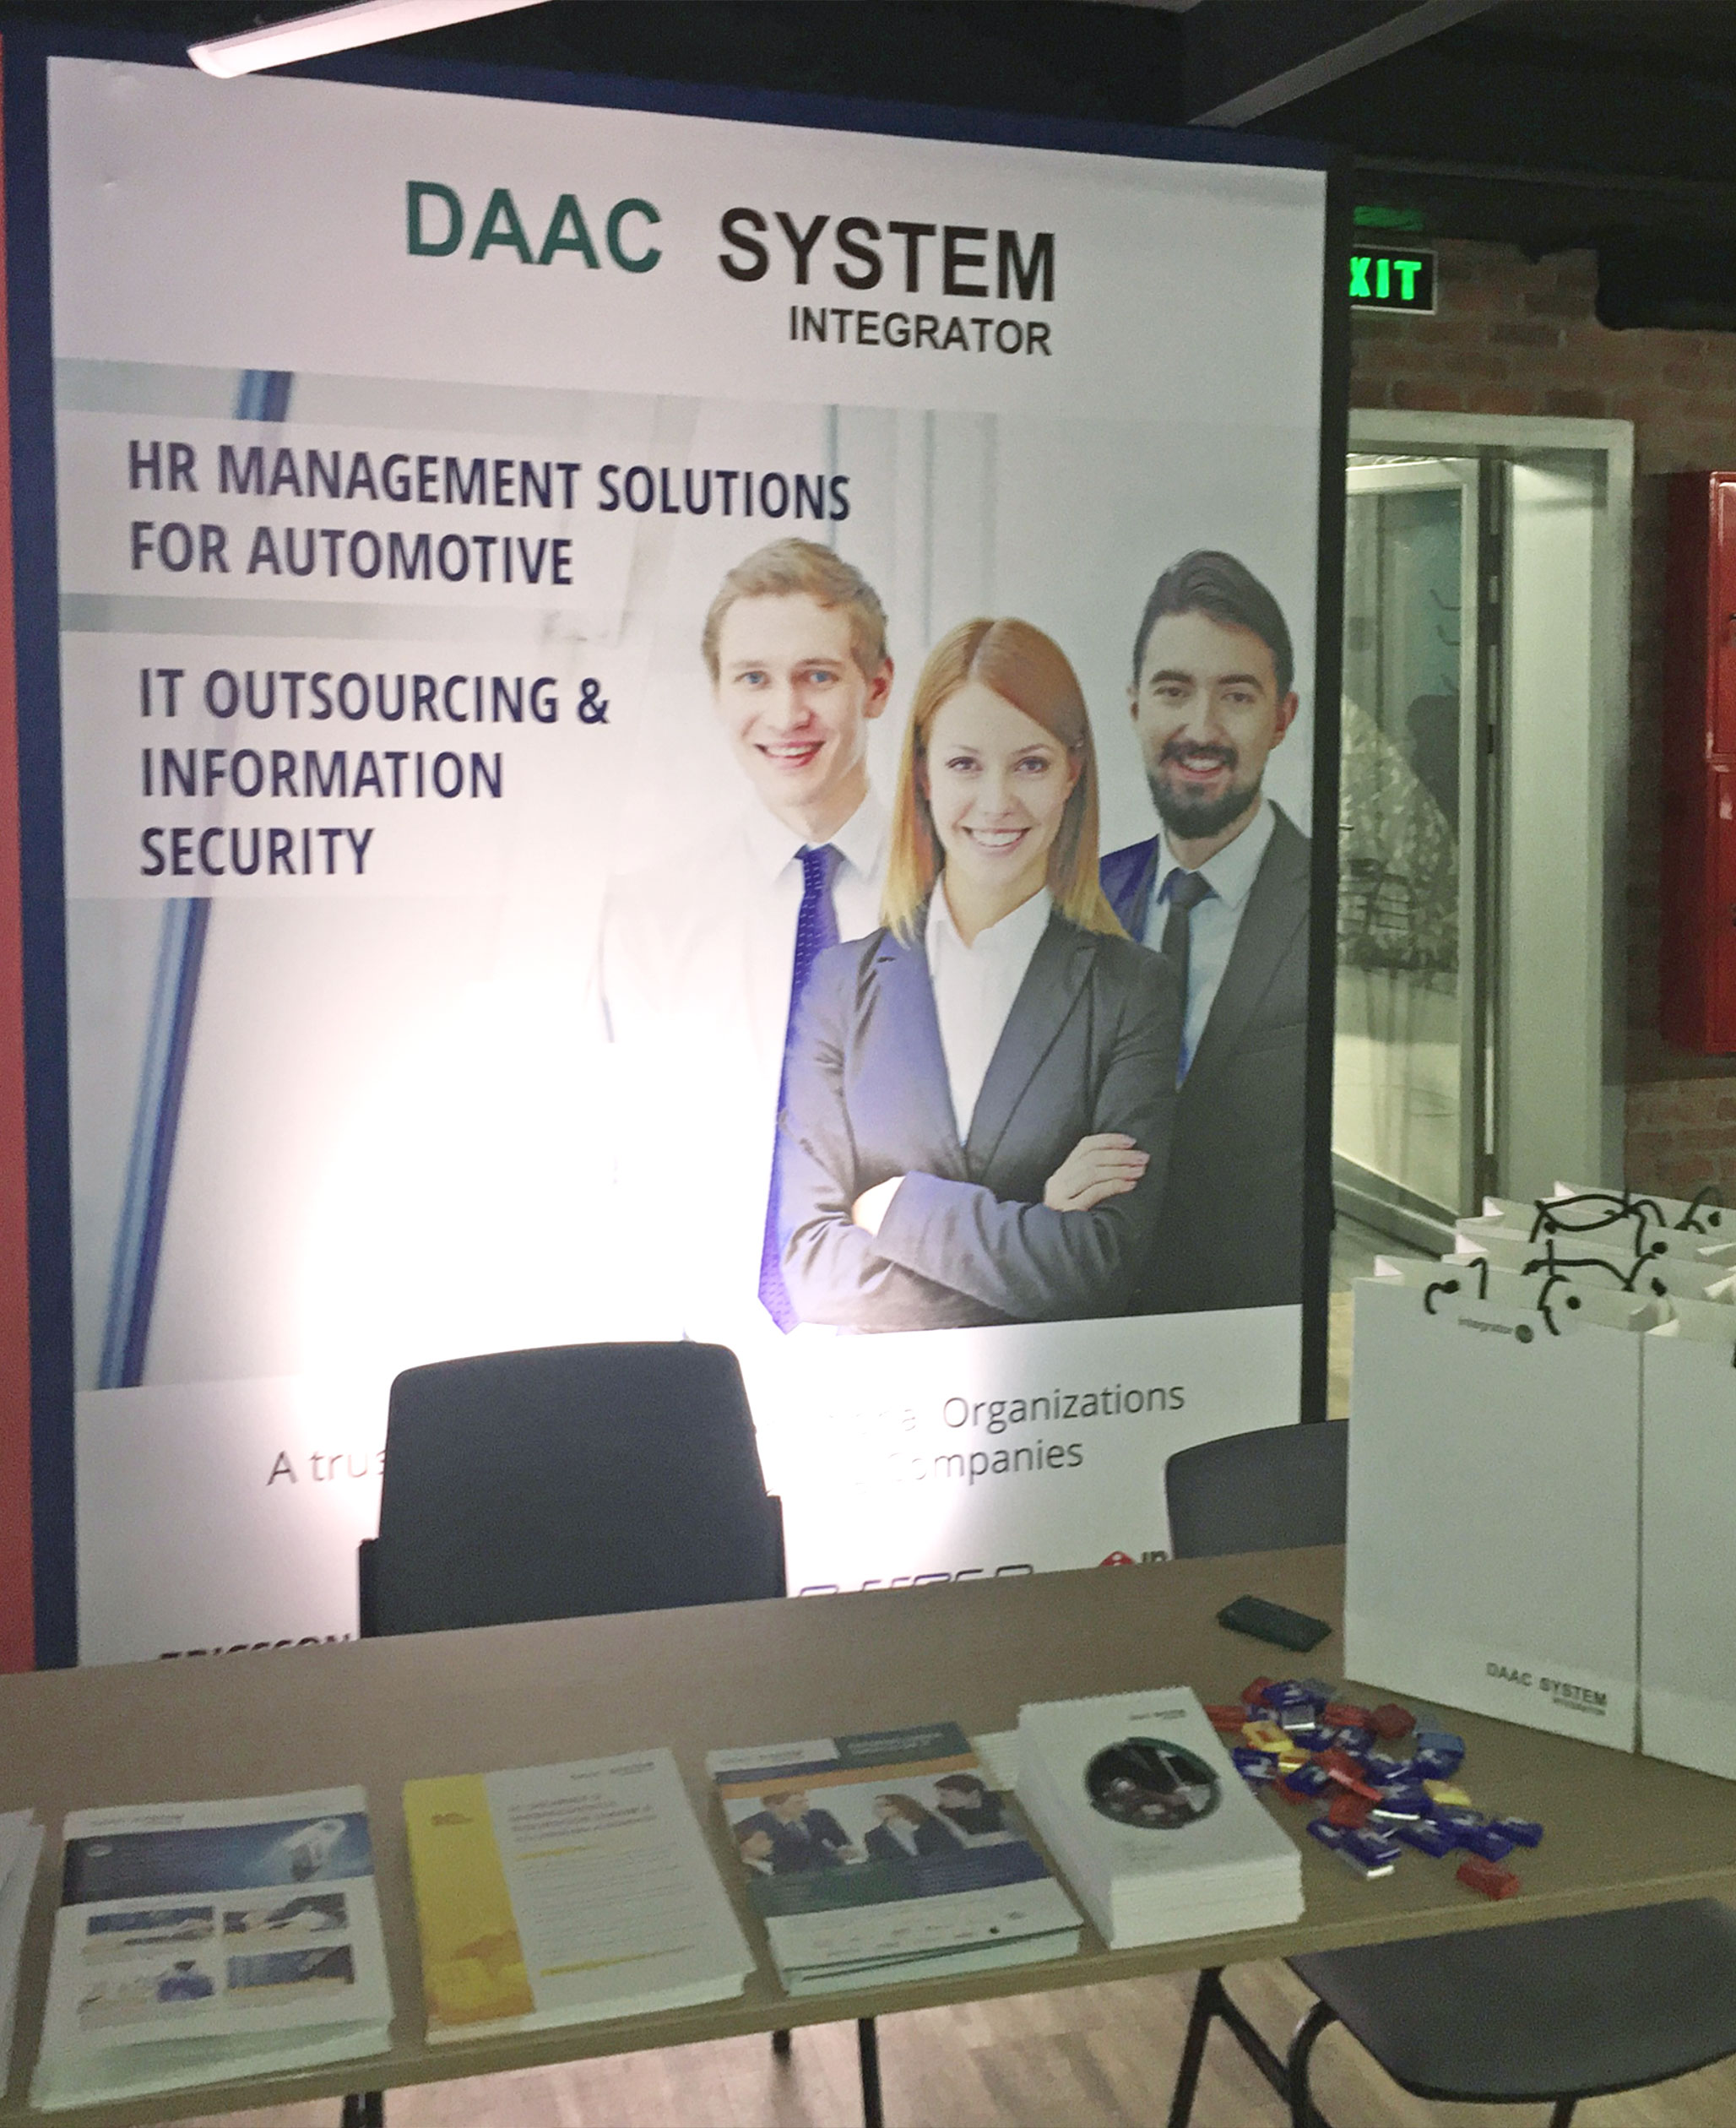 DAAC System Integrator - IT Partner of the Moldova Automotive Days 2018 event